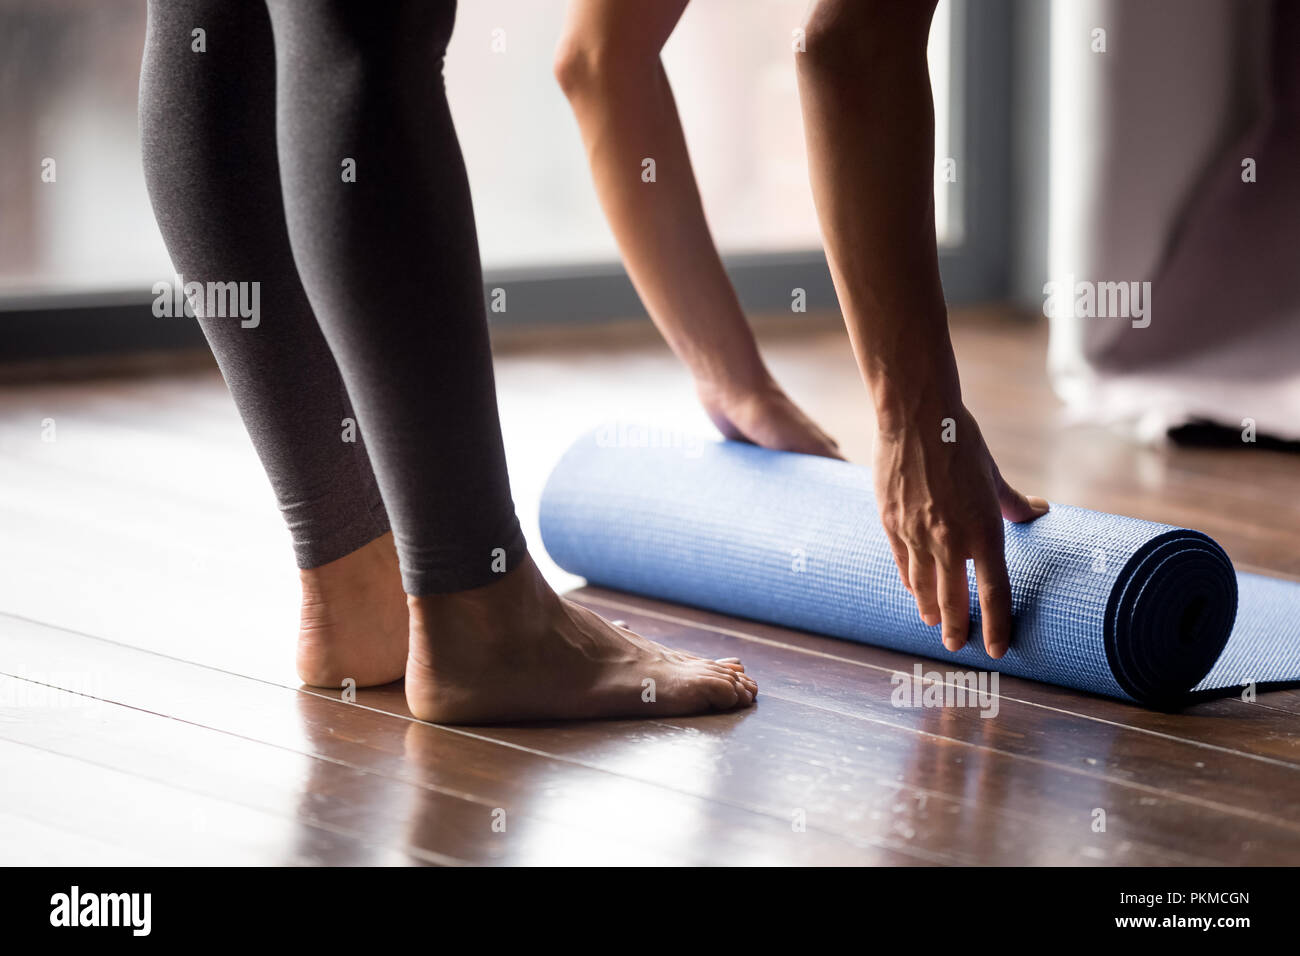 Rolling Girl tapis de yoga pour la méditation ou d'adaptation à la maison Photo Stock